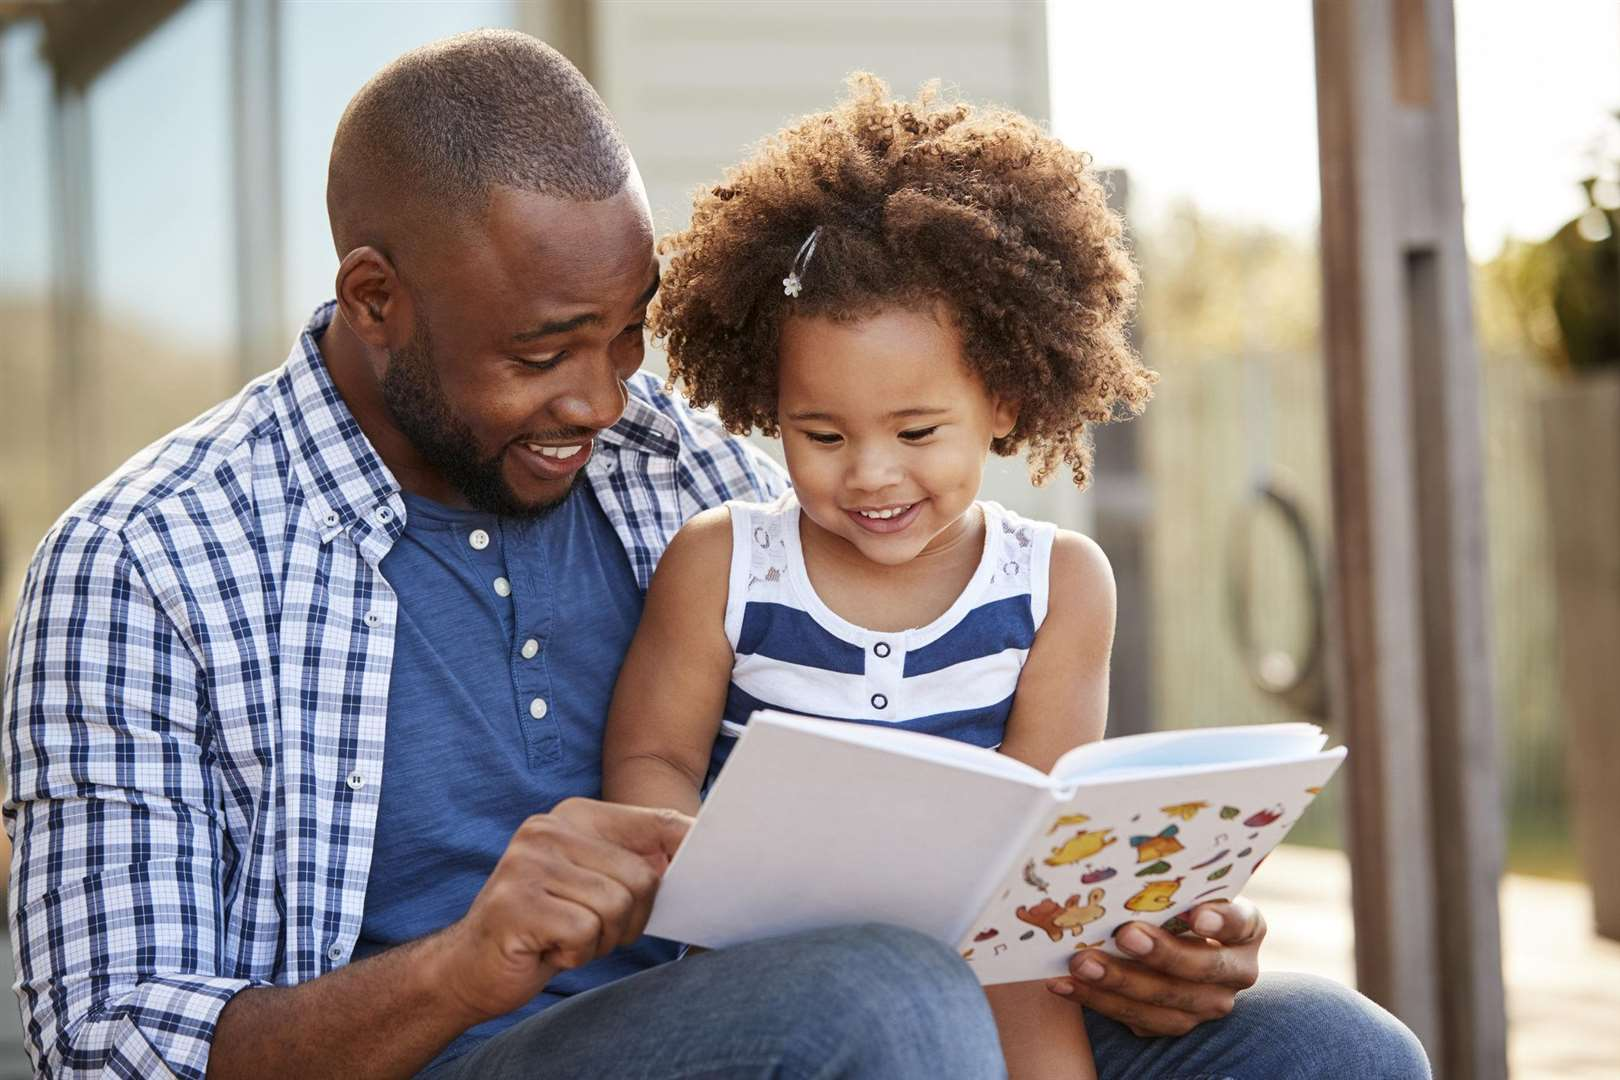 Reading to children is part of the advice